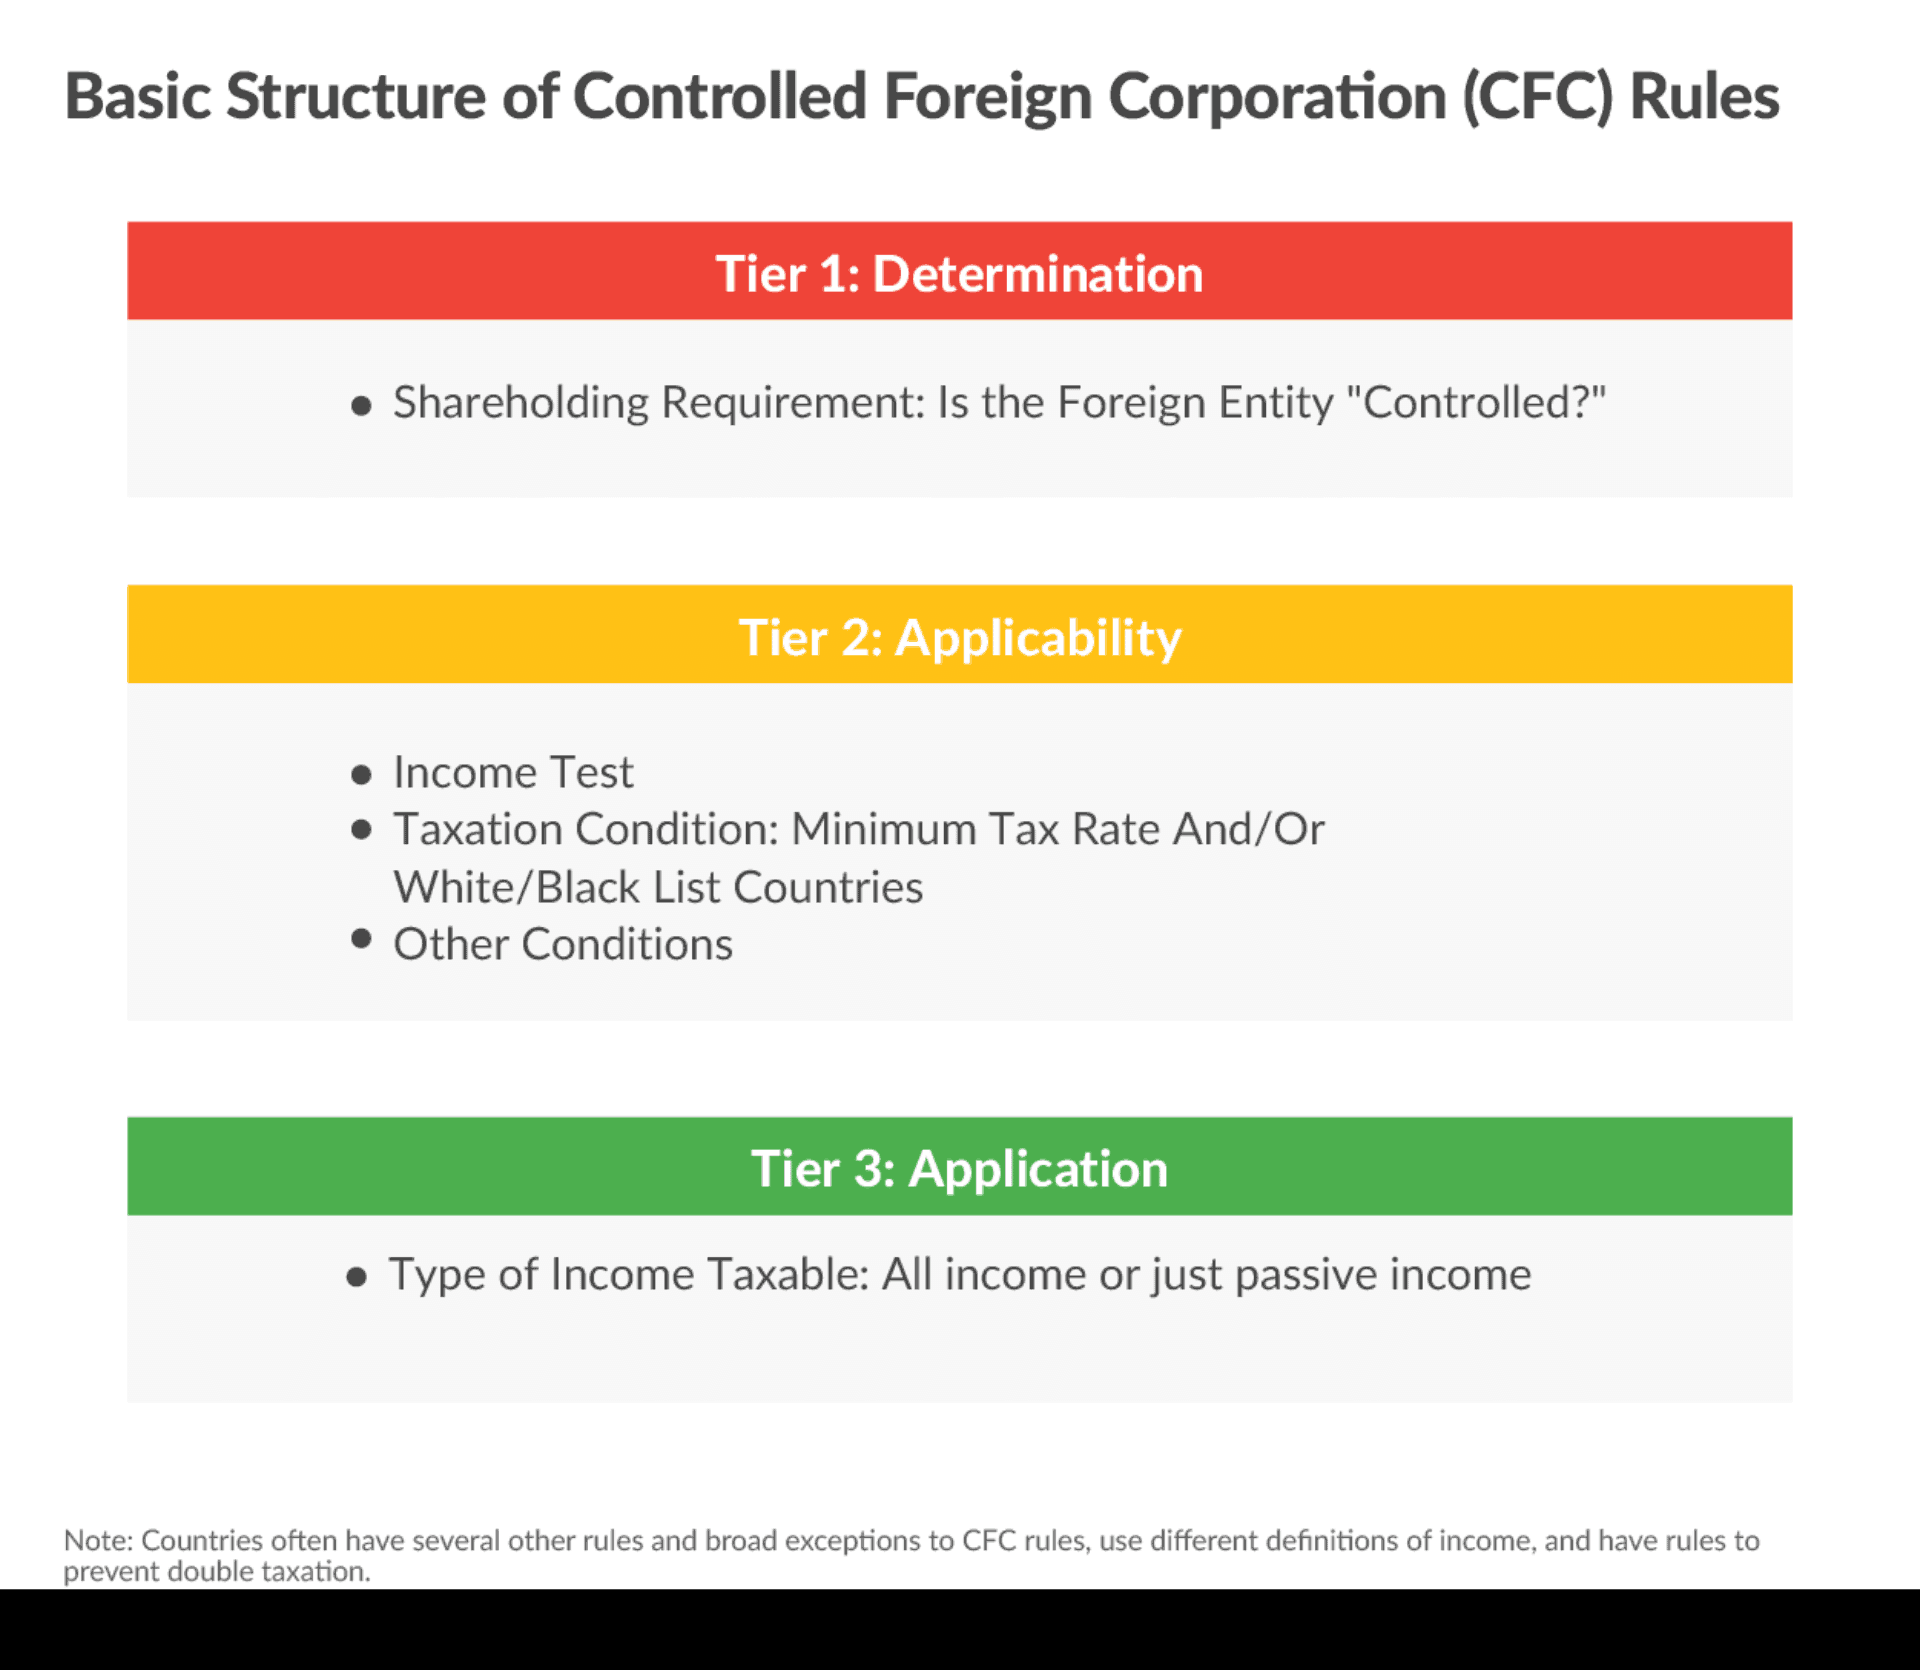 CFC Rules Basic Structure